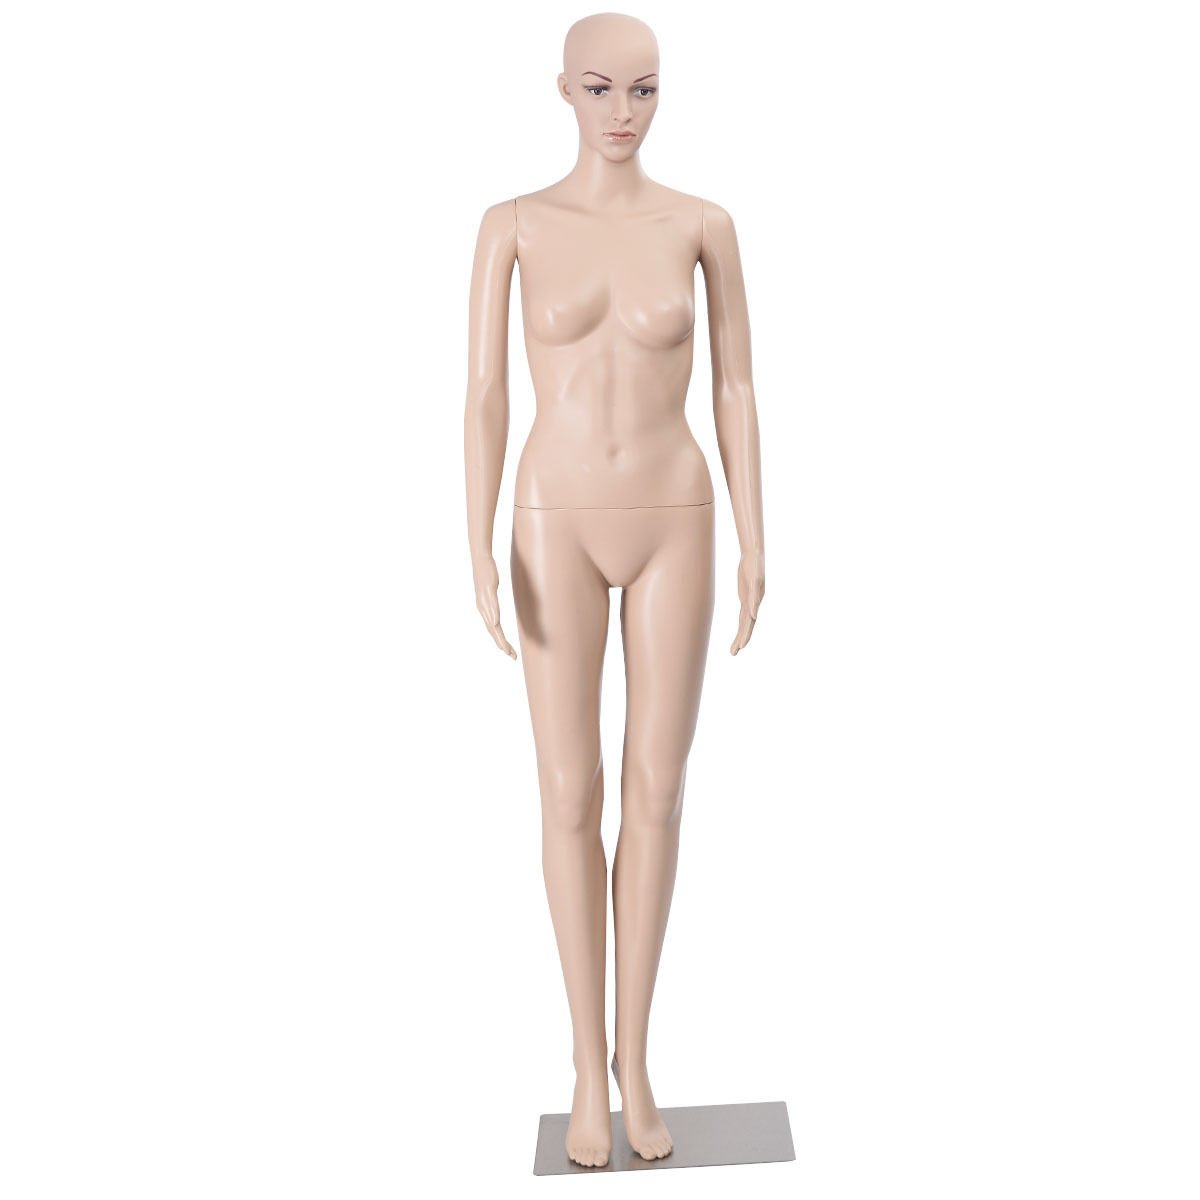 [Waller PAA] Female Mannequin Plastic Realistic Display Head Turns Dress Form w/Base